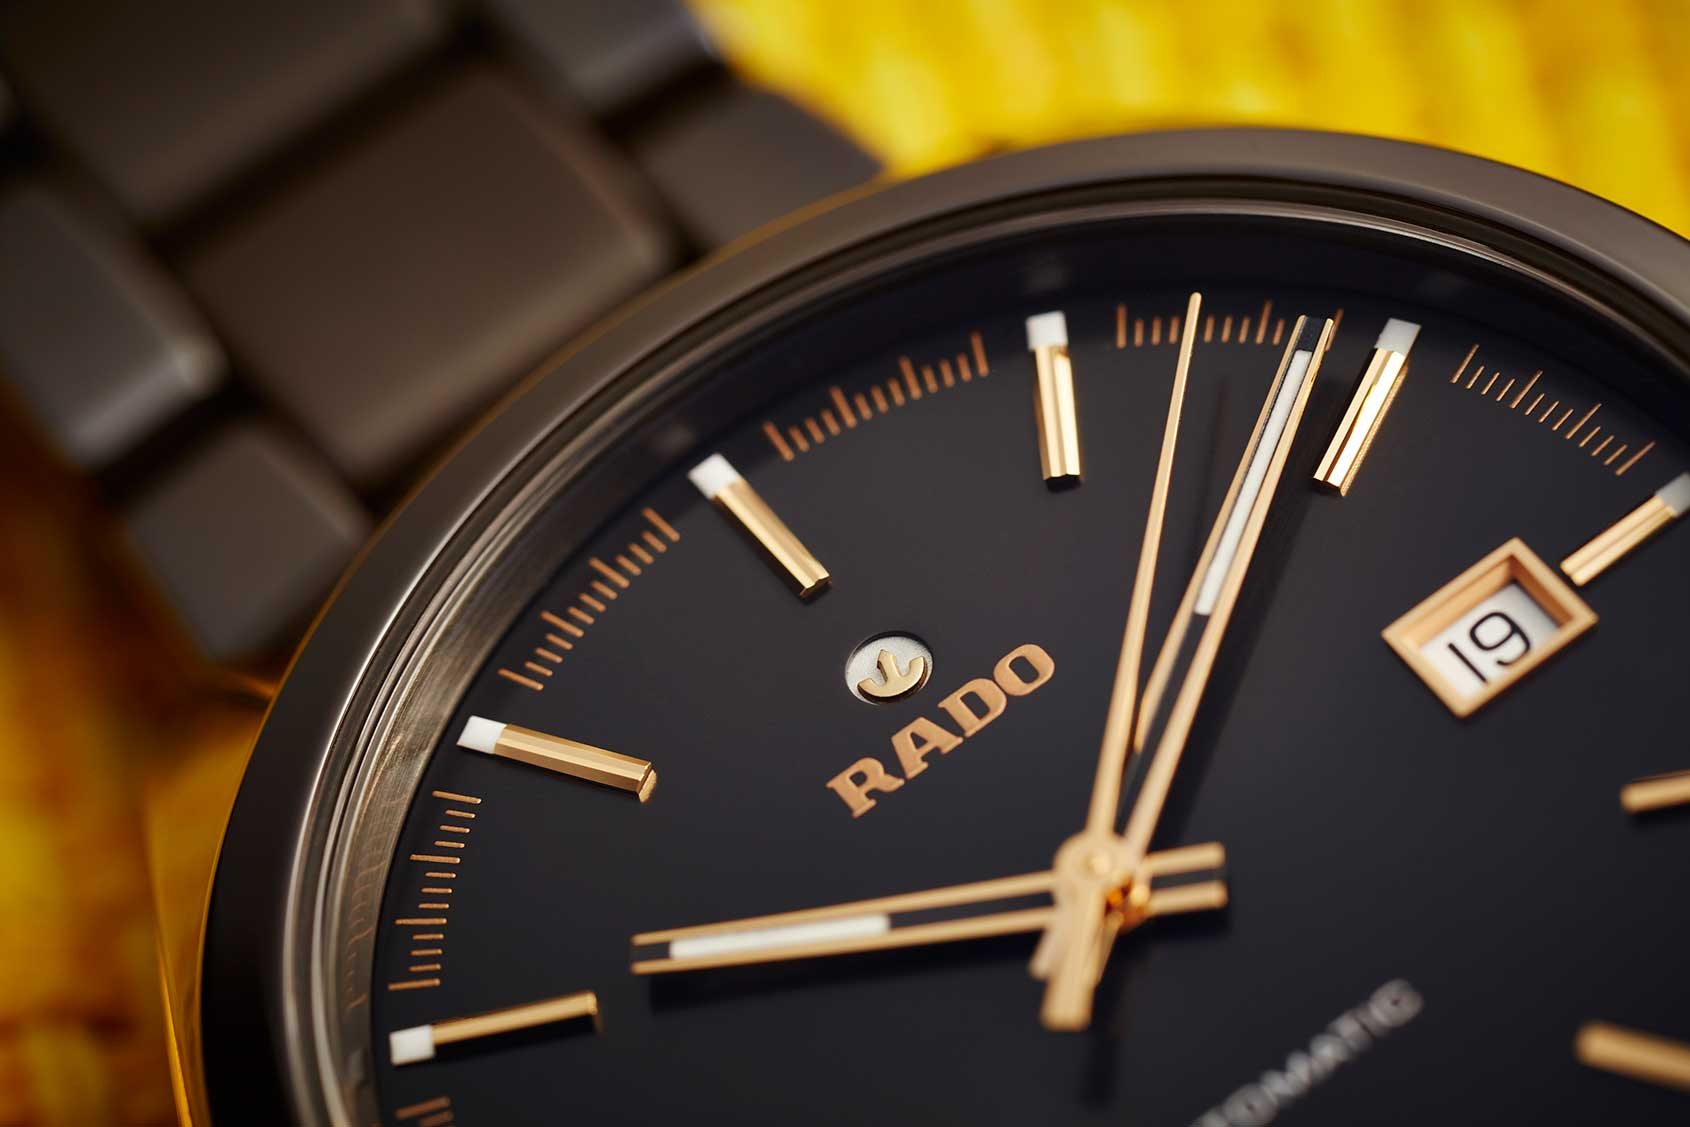 Rado Replica Automatic Watch Testing - HyperChrome Brown Ceramic